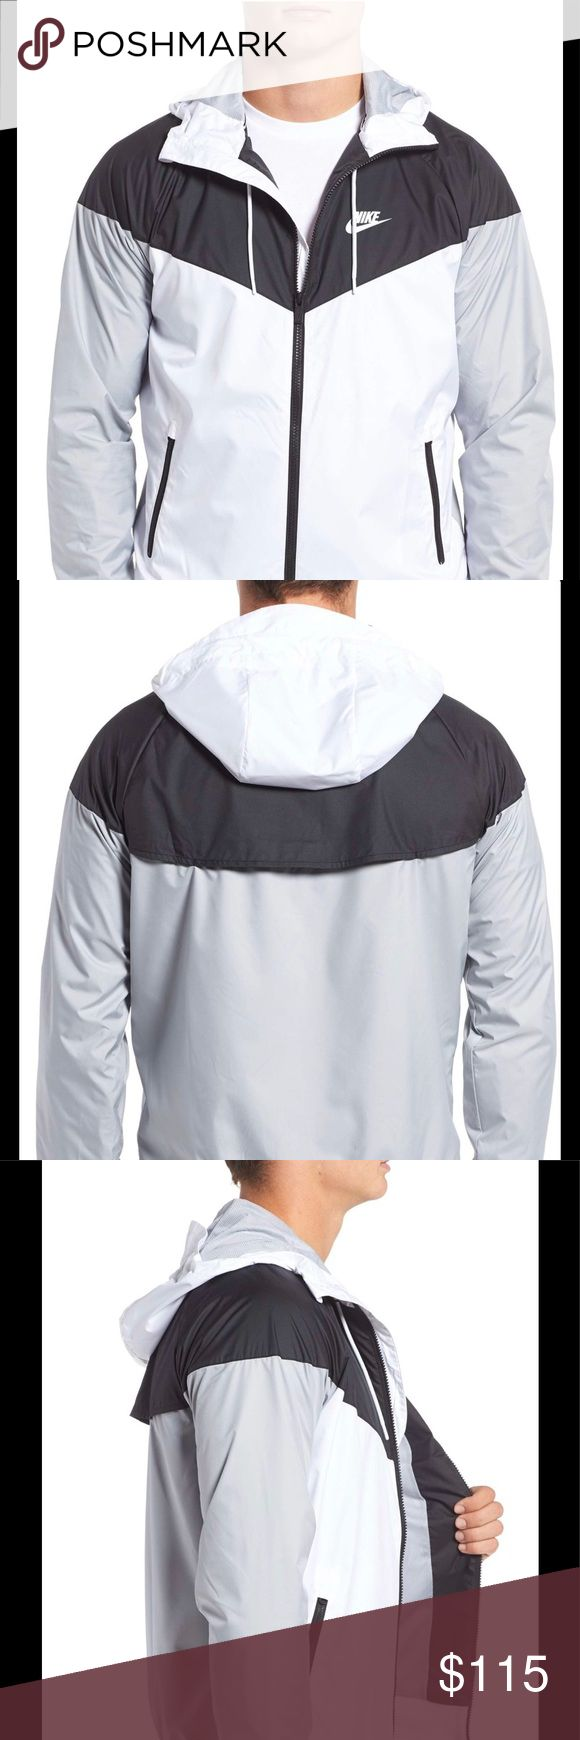 Men's Nike windrunner jacket large. Brand new. Nike Sportswear Windrunner Men's Jacket updates a classic, running-inspired layer with a color-blocked design on lightweight fabric for an iconic look and lasting comfort. Nike Jackets & Coats